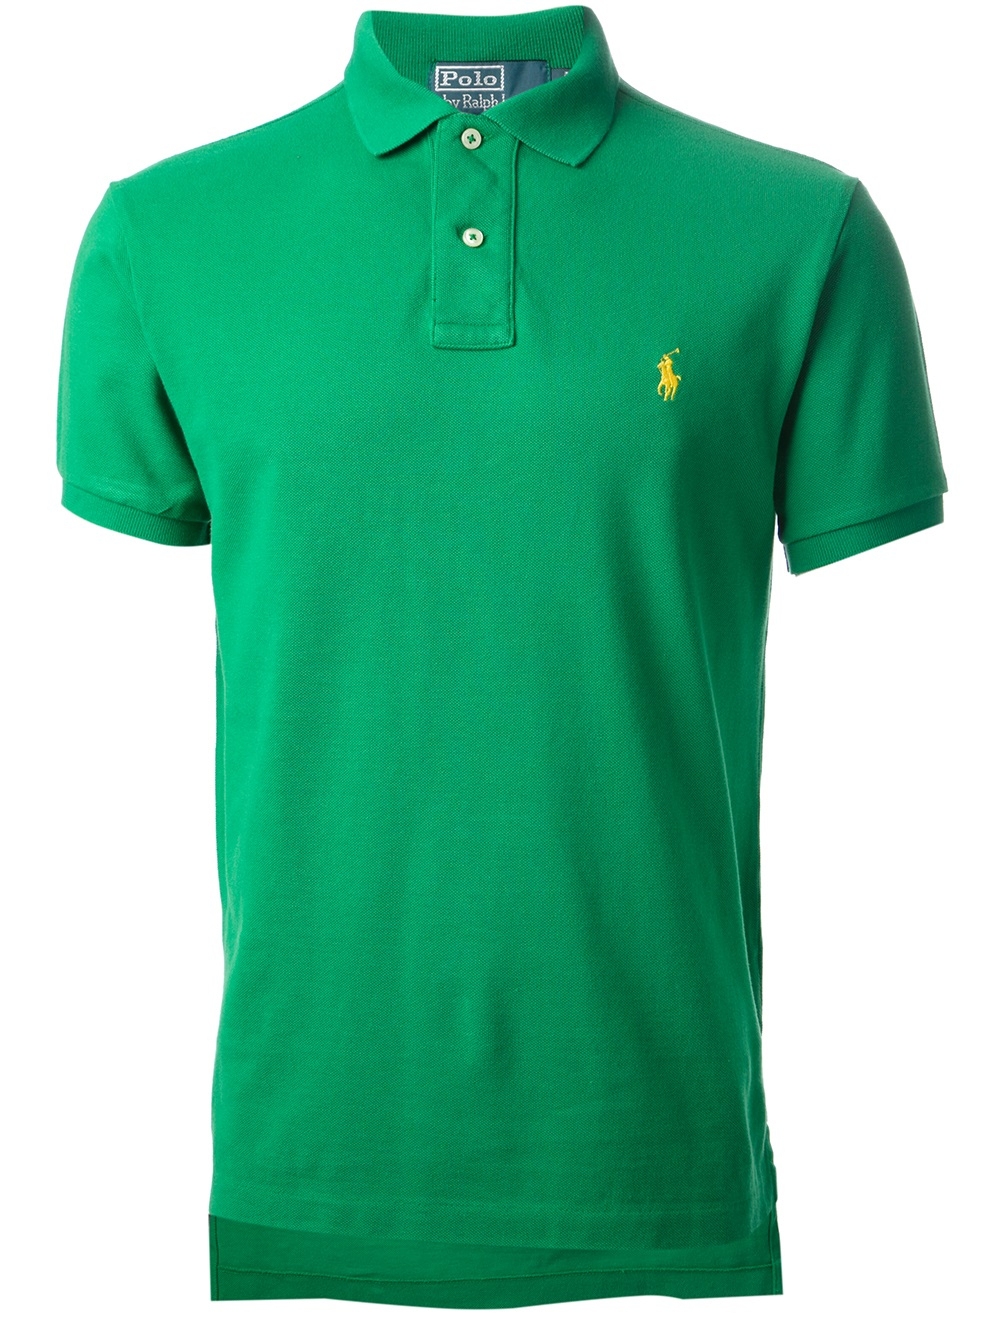 green ralph lauren polo shirt images pictures becuo. Black Bedroom Furniture Sets. Home Design Ideas